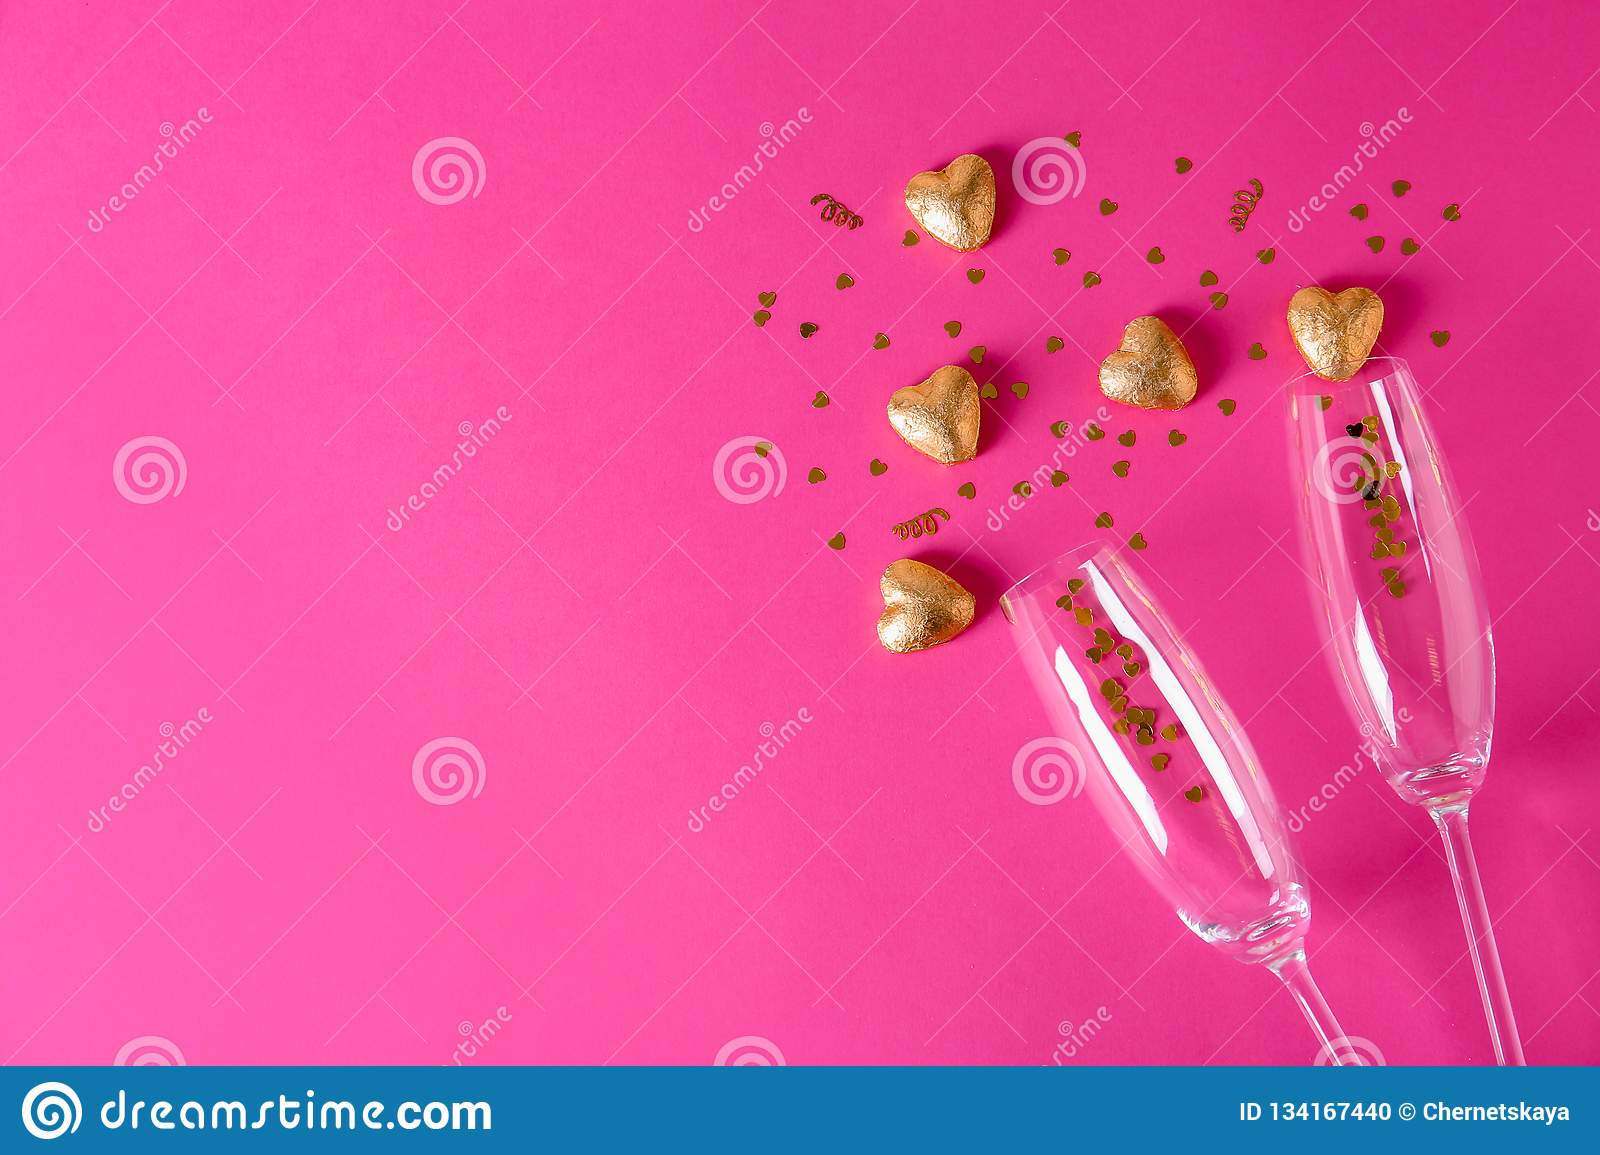 Champagne glasses and heart shaped candies in golden foil on color background